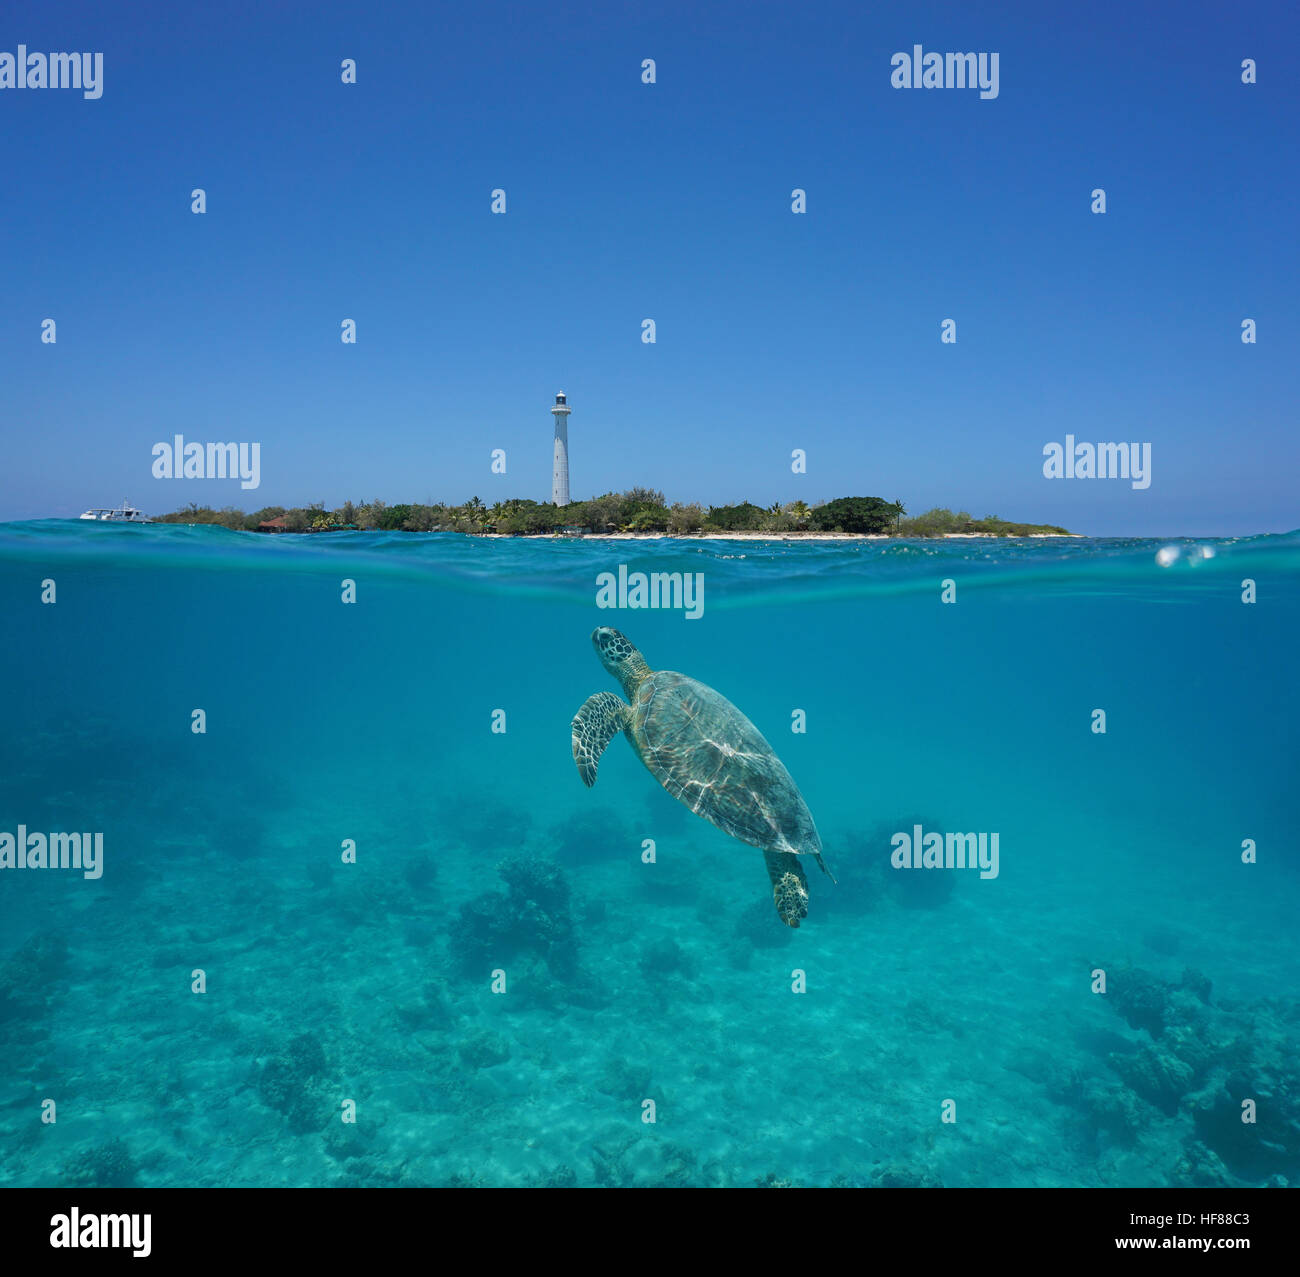 A green sea turtle underwater with Amedee island and lighthouse over the water split by waterline, New Caledonia, - Stock Image